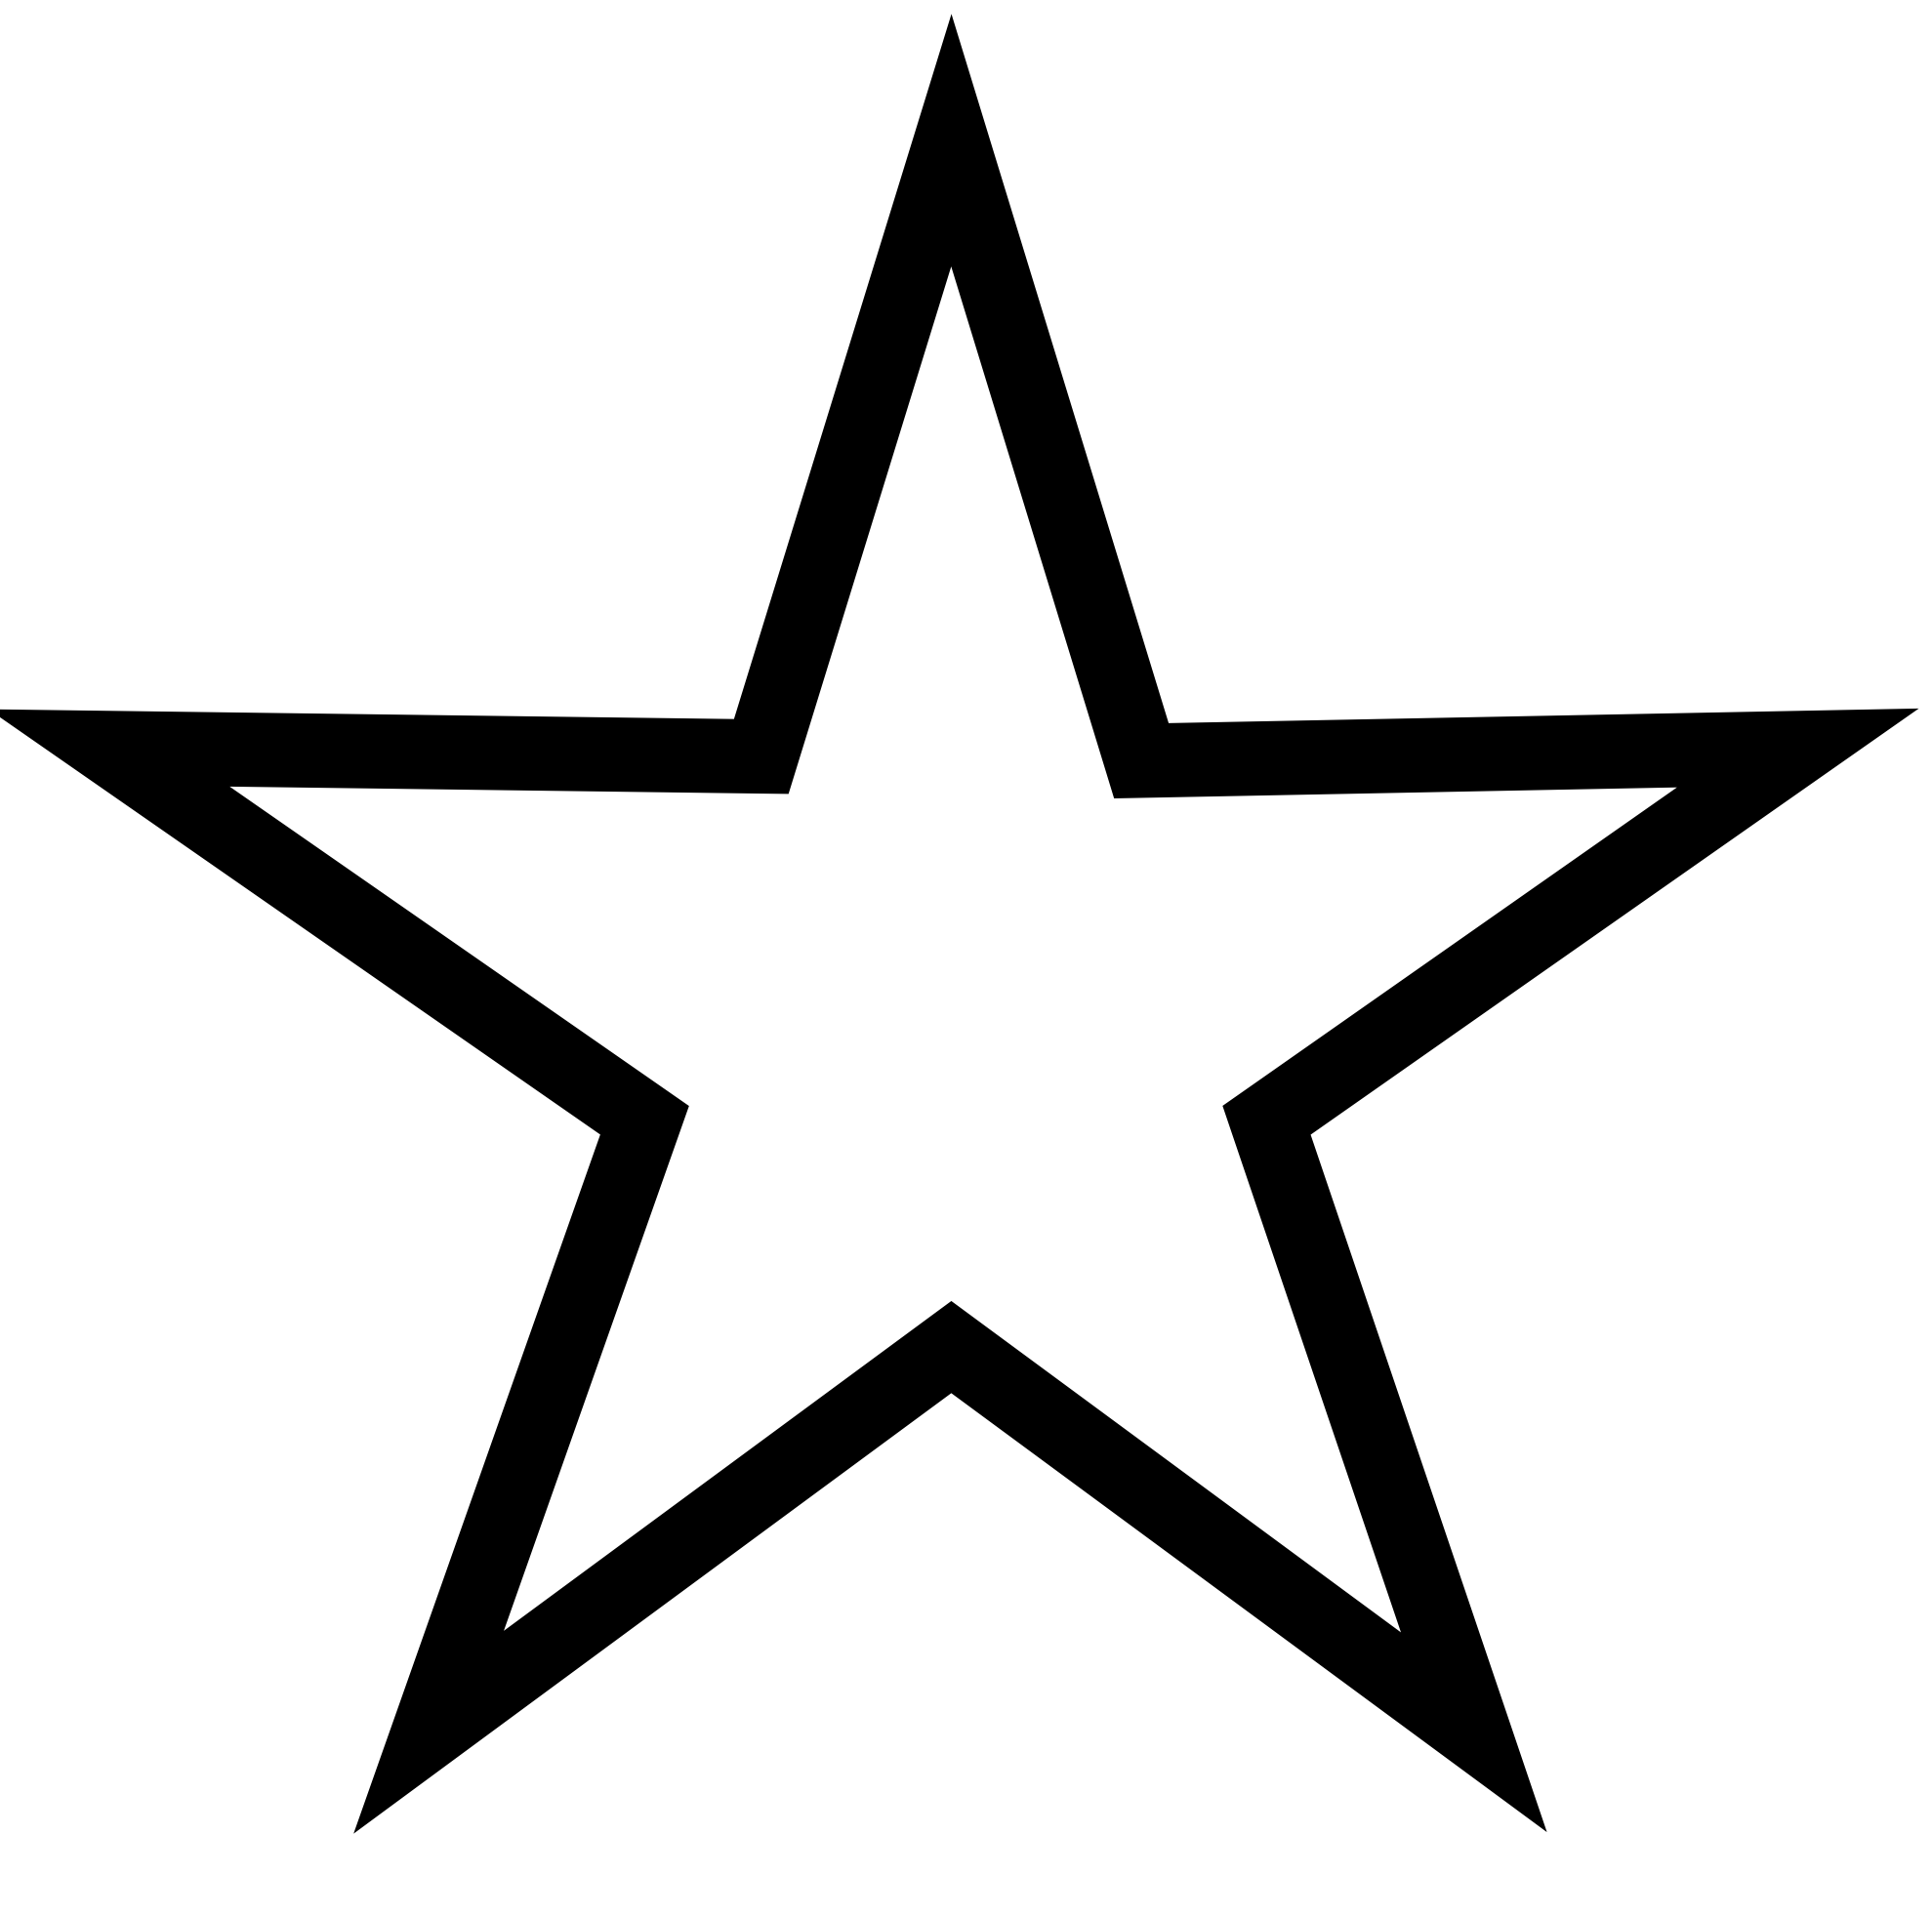 Star black and white shooting star clip art black and white free - PNG Star Black And White